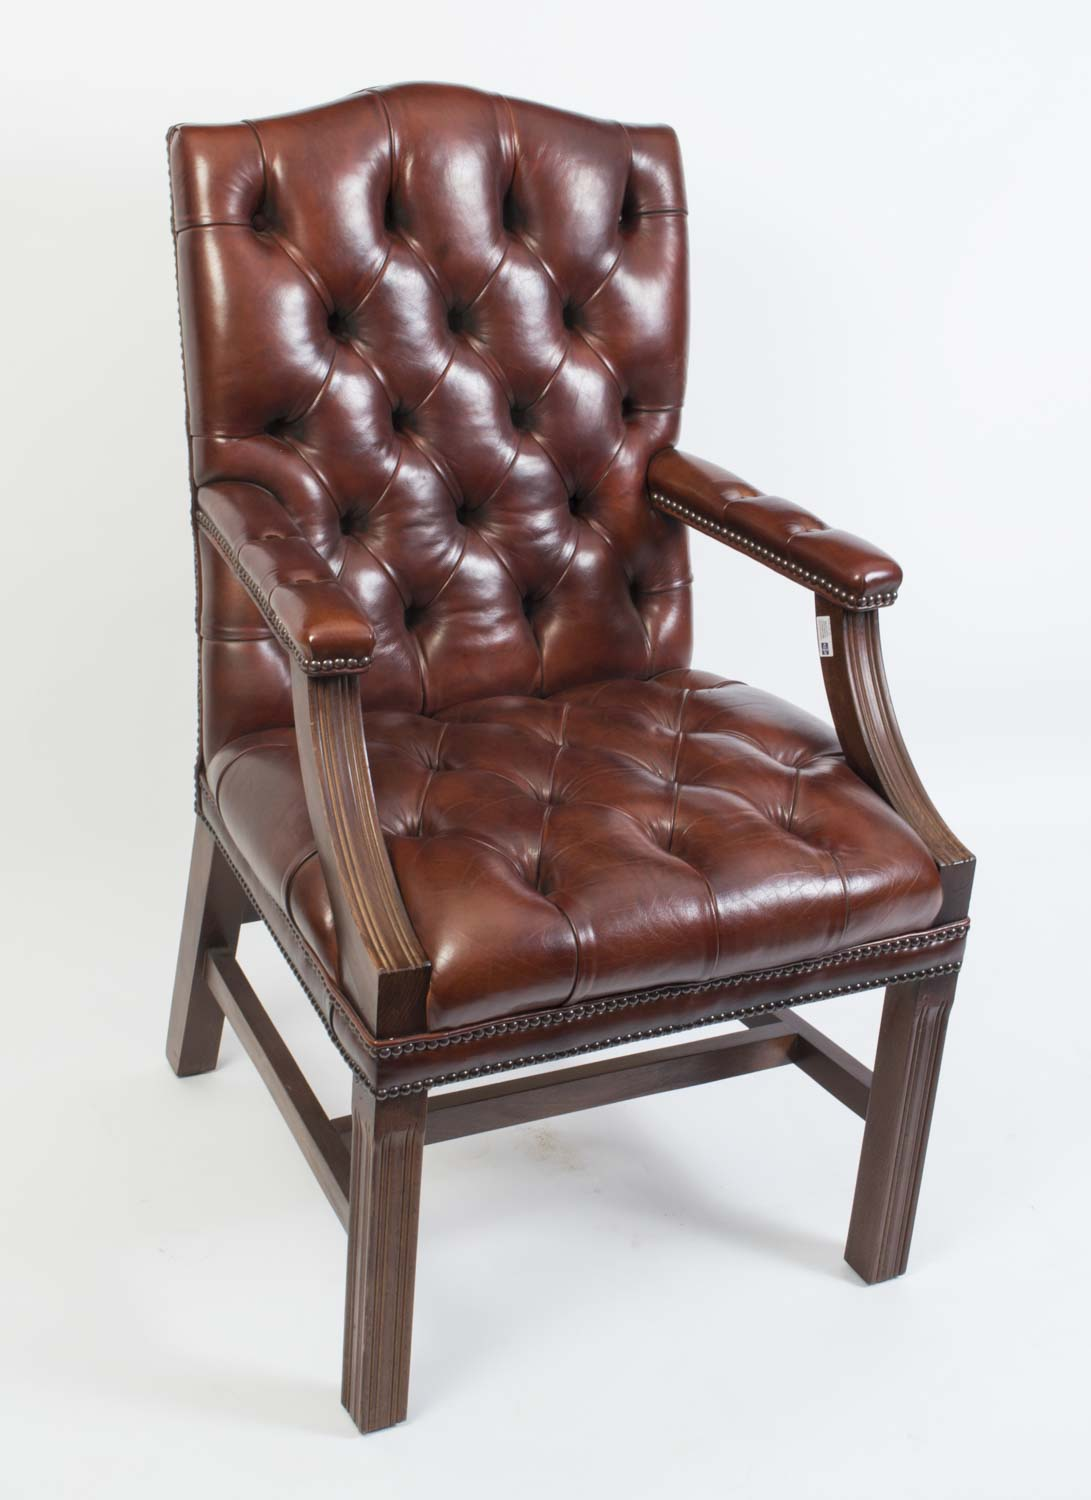 leather desk chairs handmade gainsborough leather desk chair ref no 134